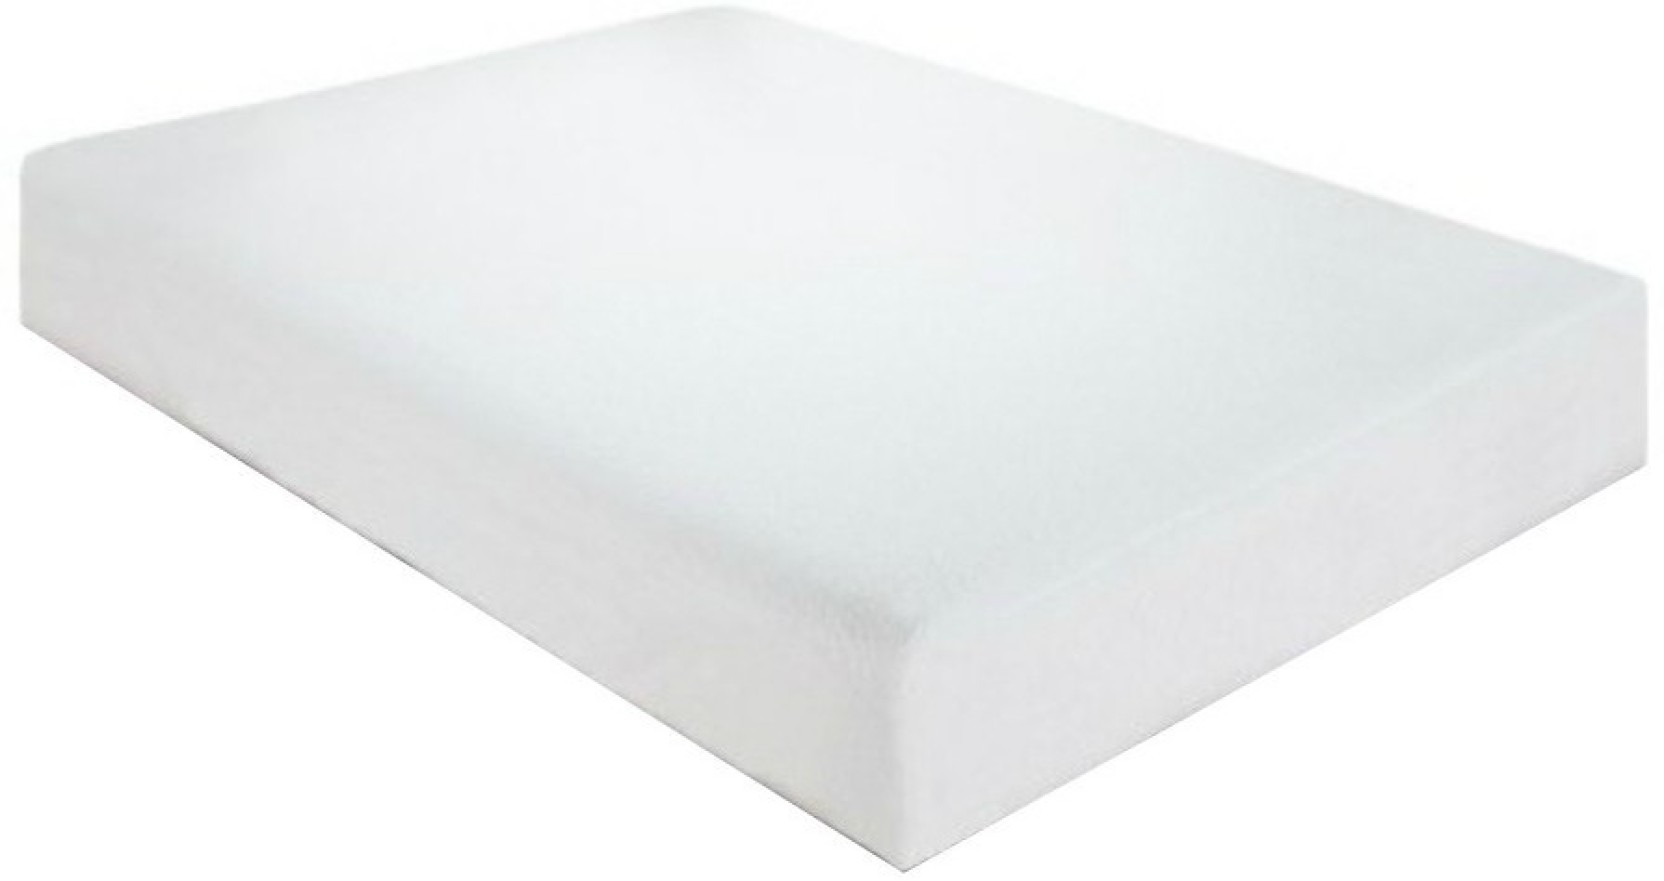 Wakefit Orthopaedic Memory Foam 8 Inch King High Resilience Hr Foam Mattress Price In India